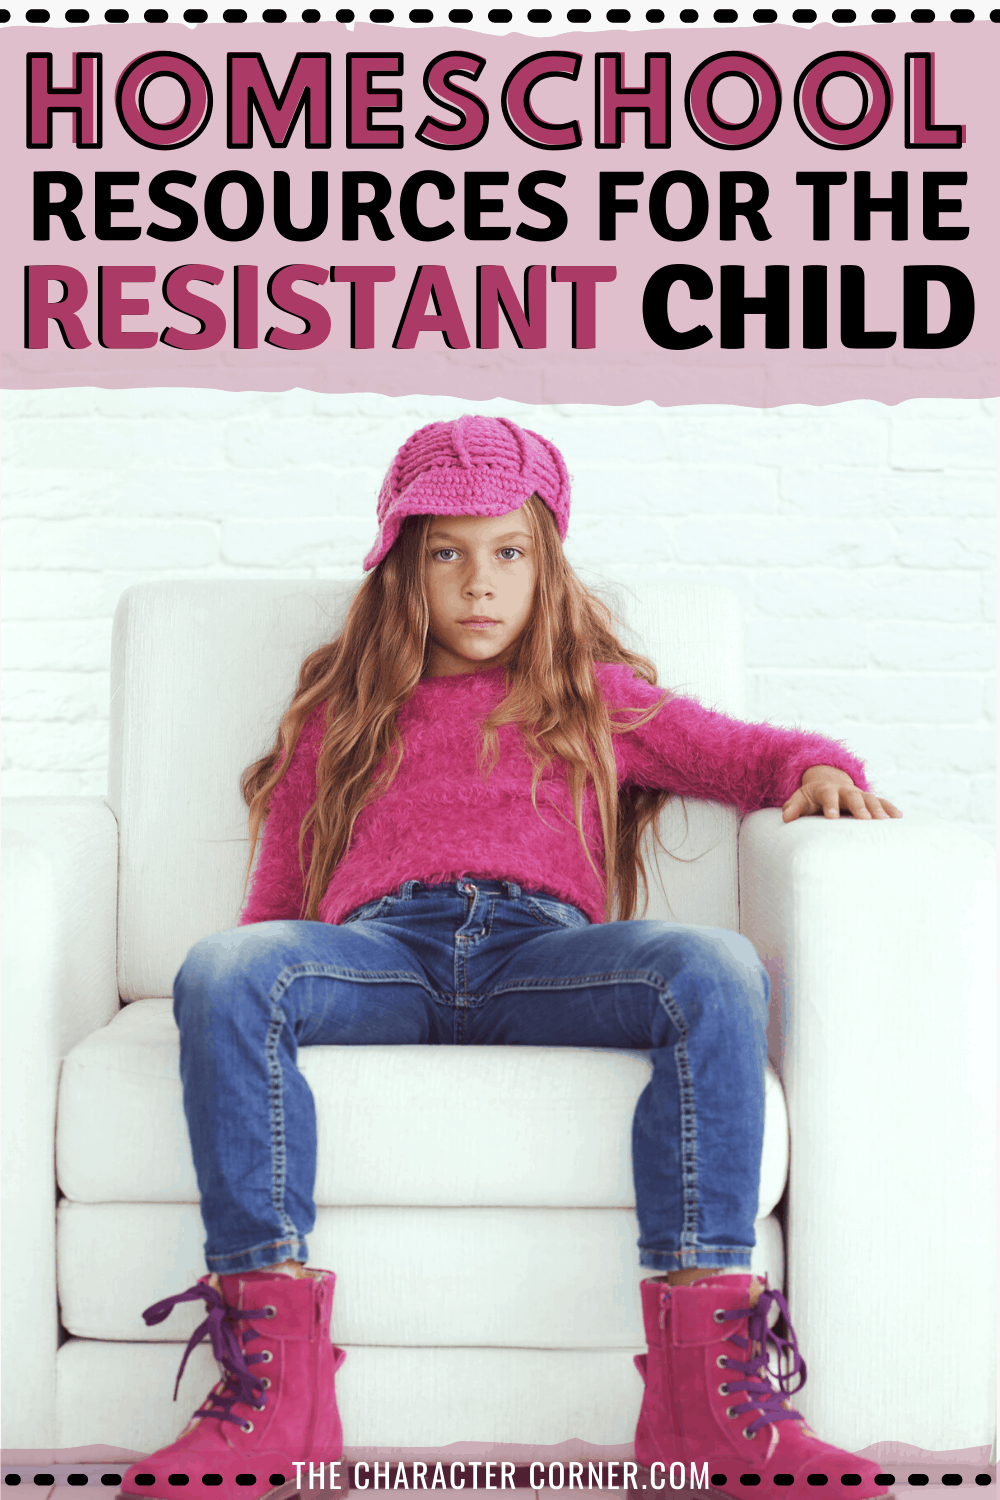 Homeschool Resources For The Resistant Child on The Character Corner